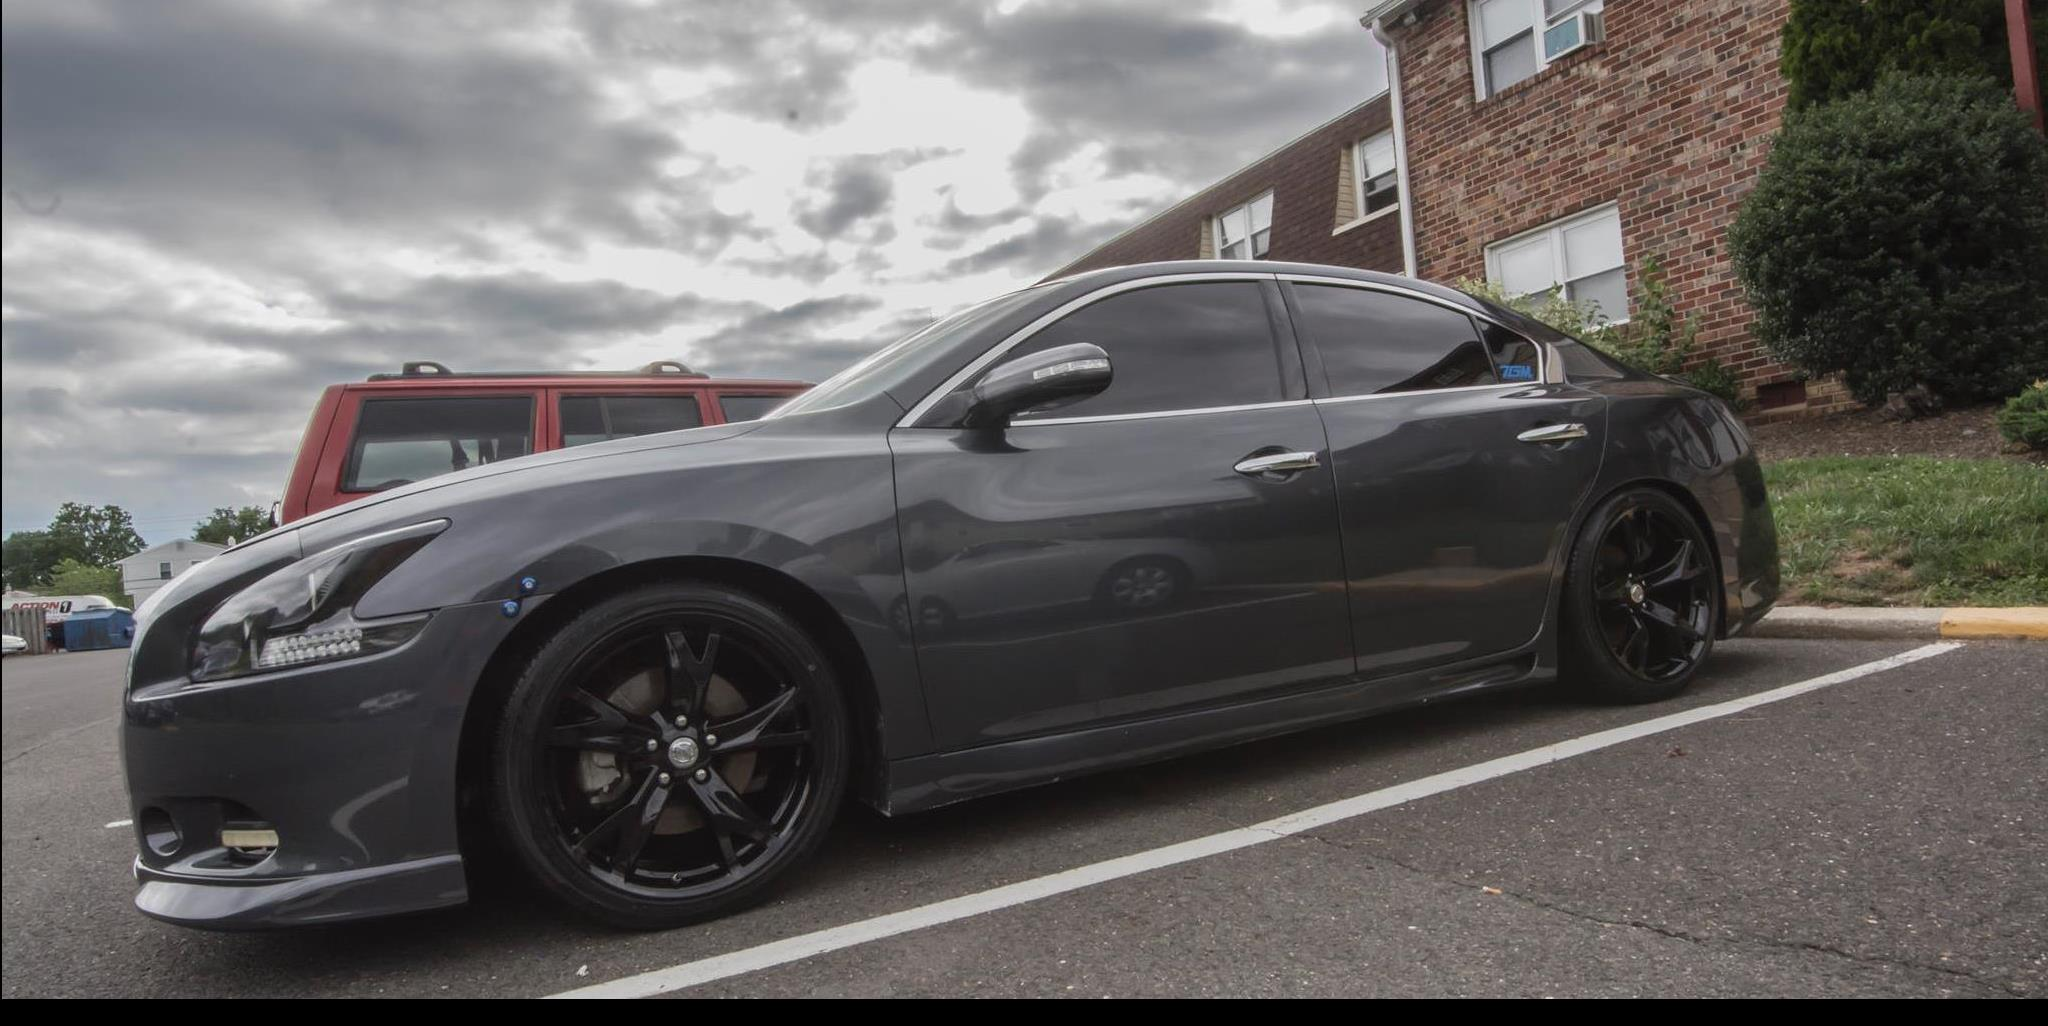 whitemax285 2012 Nissan Maxima Specs, Photos, Modification ...